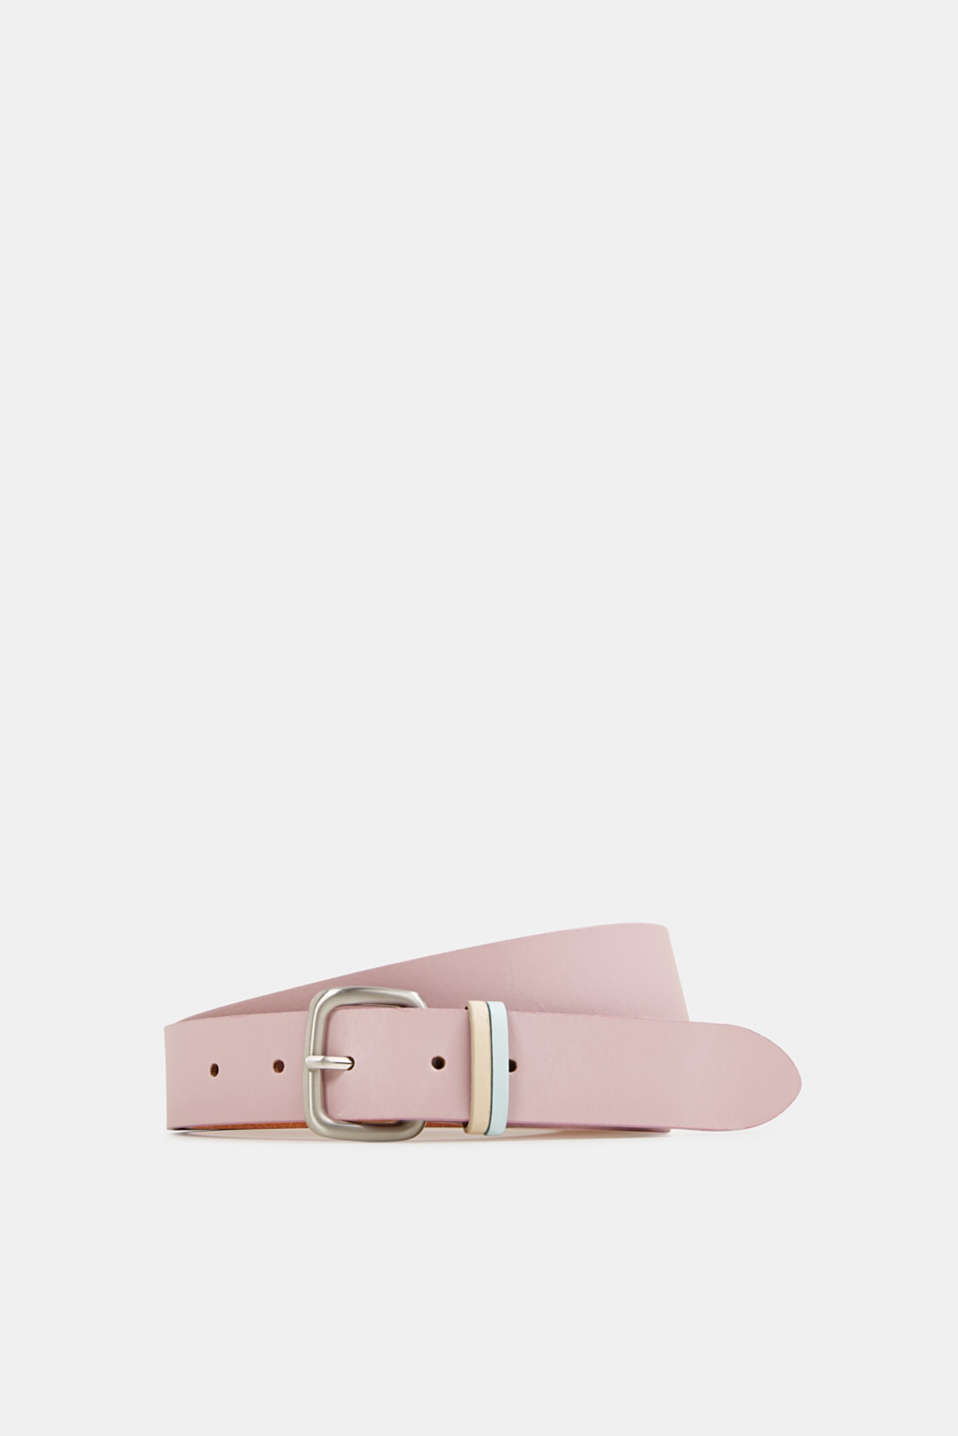 Esprit - Made of leather: belt in pastel colours